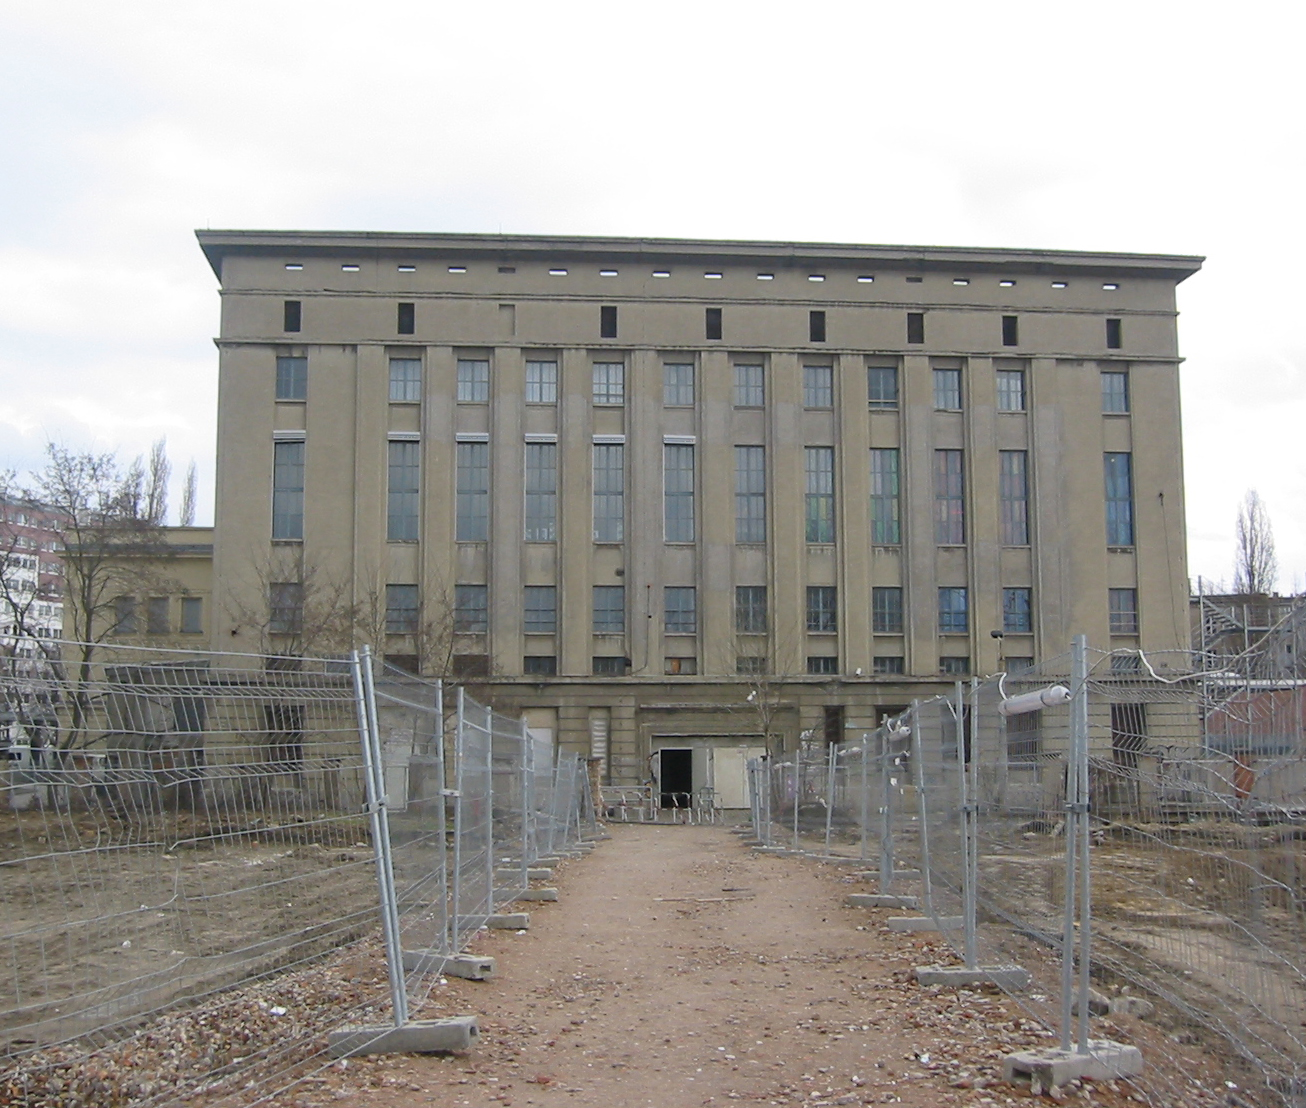 10 Facts About Berghain, Berlin's Legendary Techno Club (Warning: Beatport Article Hilariously NSFW)